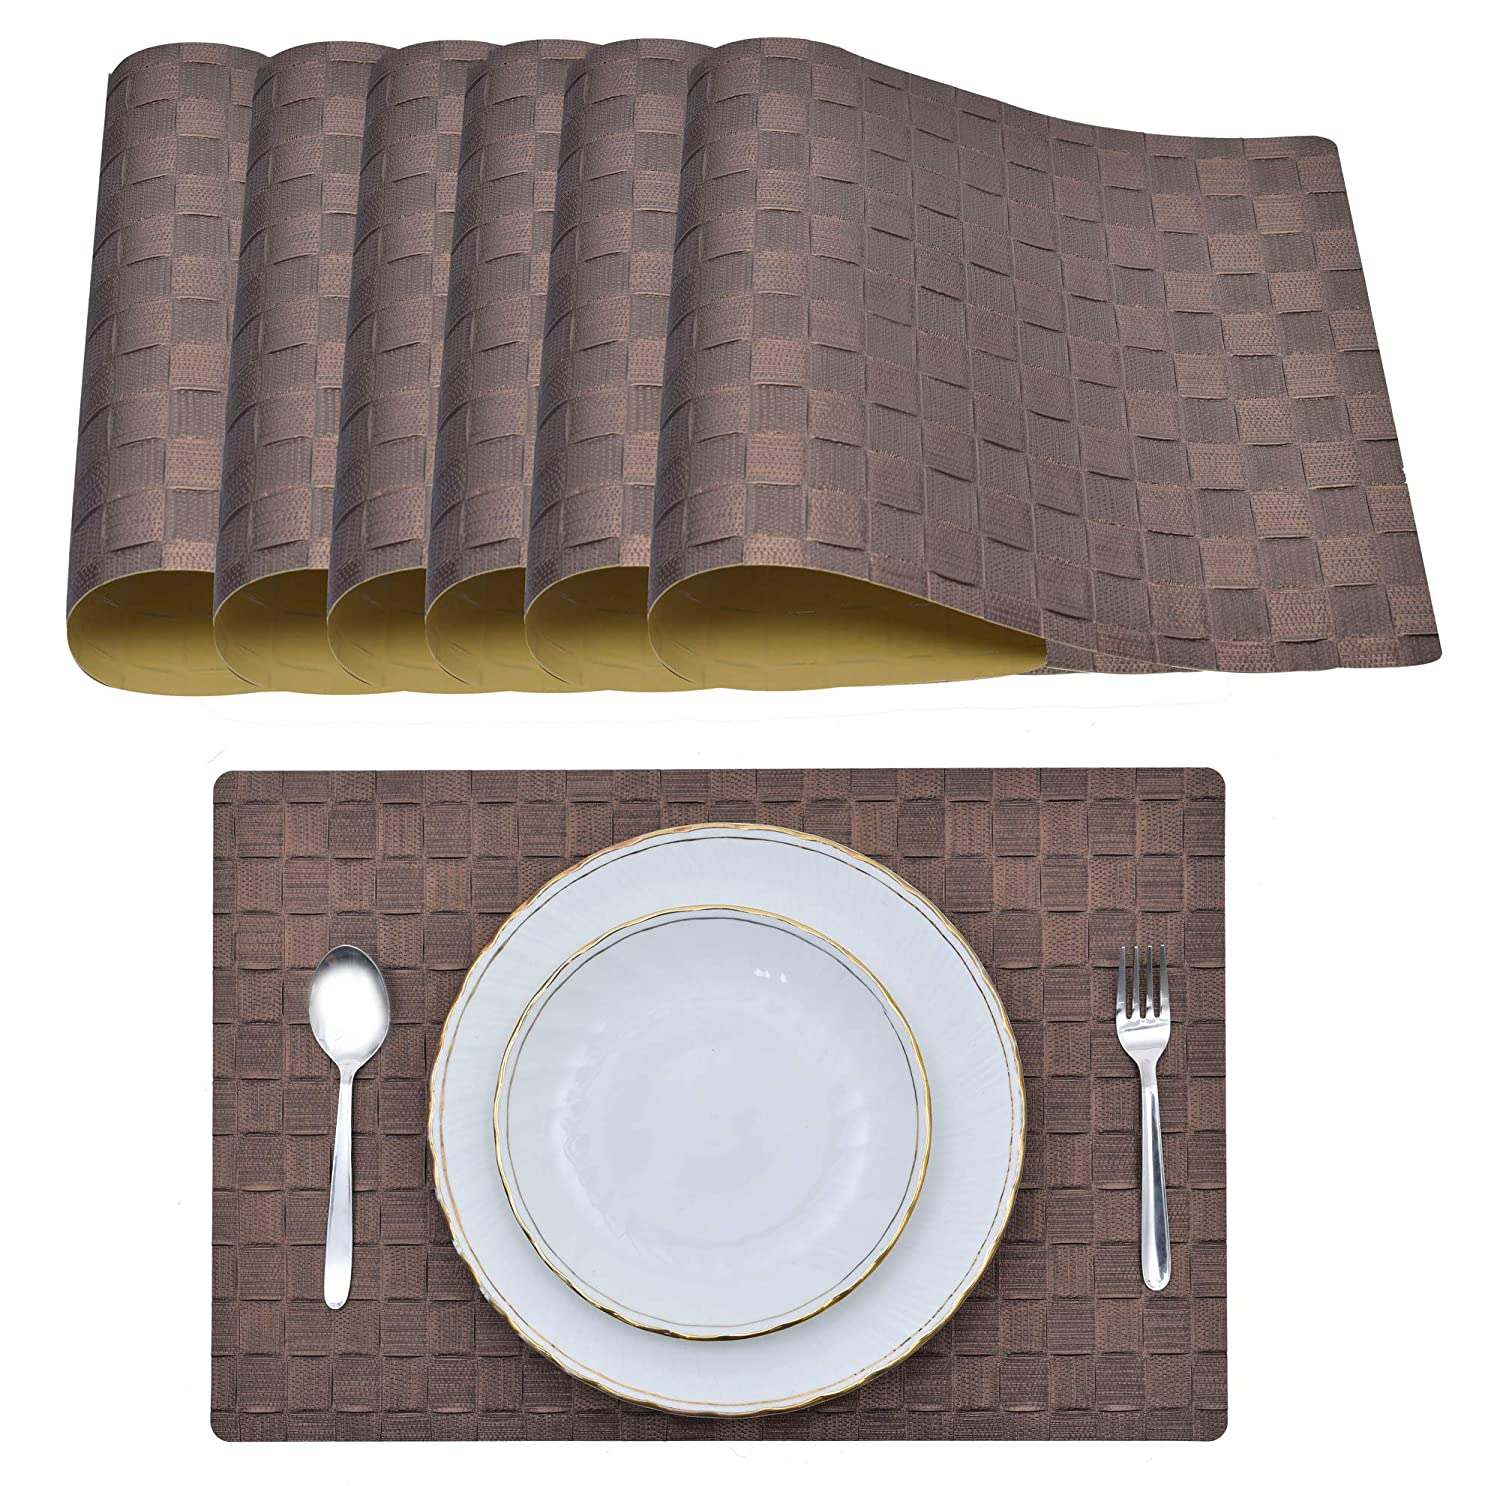 Decozen Placemats for Dining Table Coffee Table Dinner Table Set of 6 Placemats Heat resistant Water Proof Easy To Clean Table Mats 18 x 12 inches